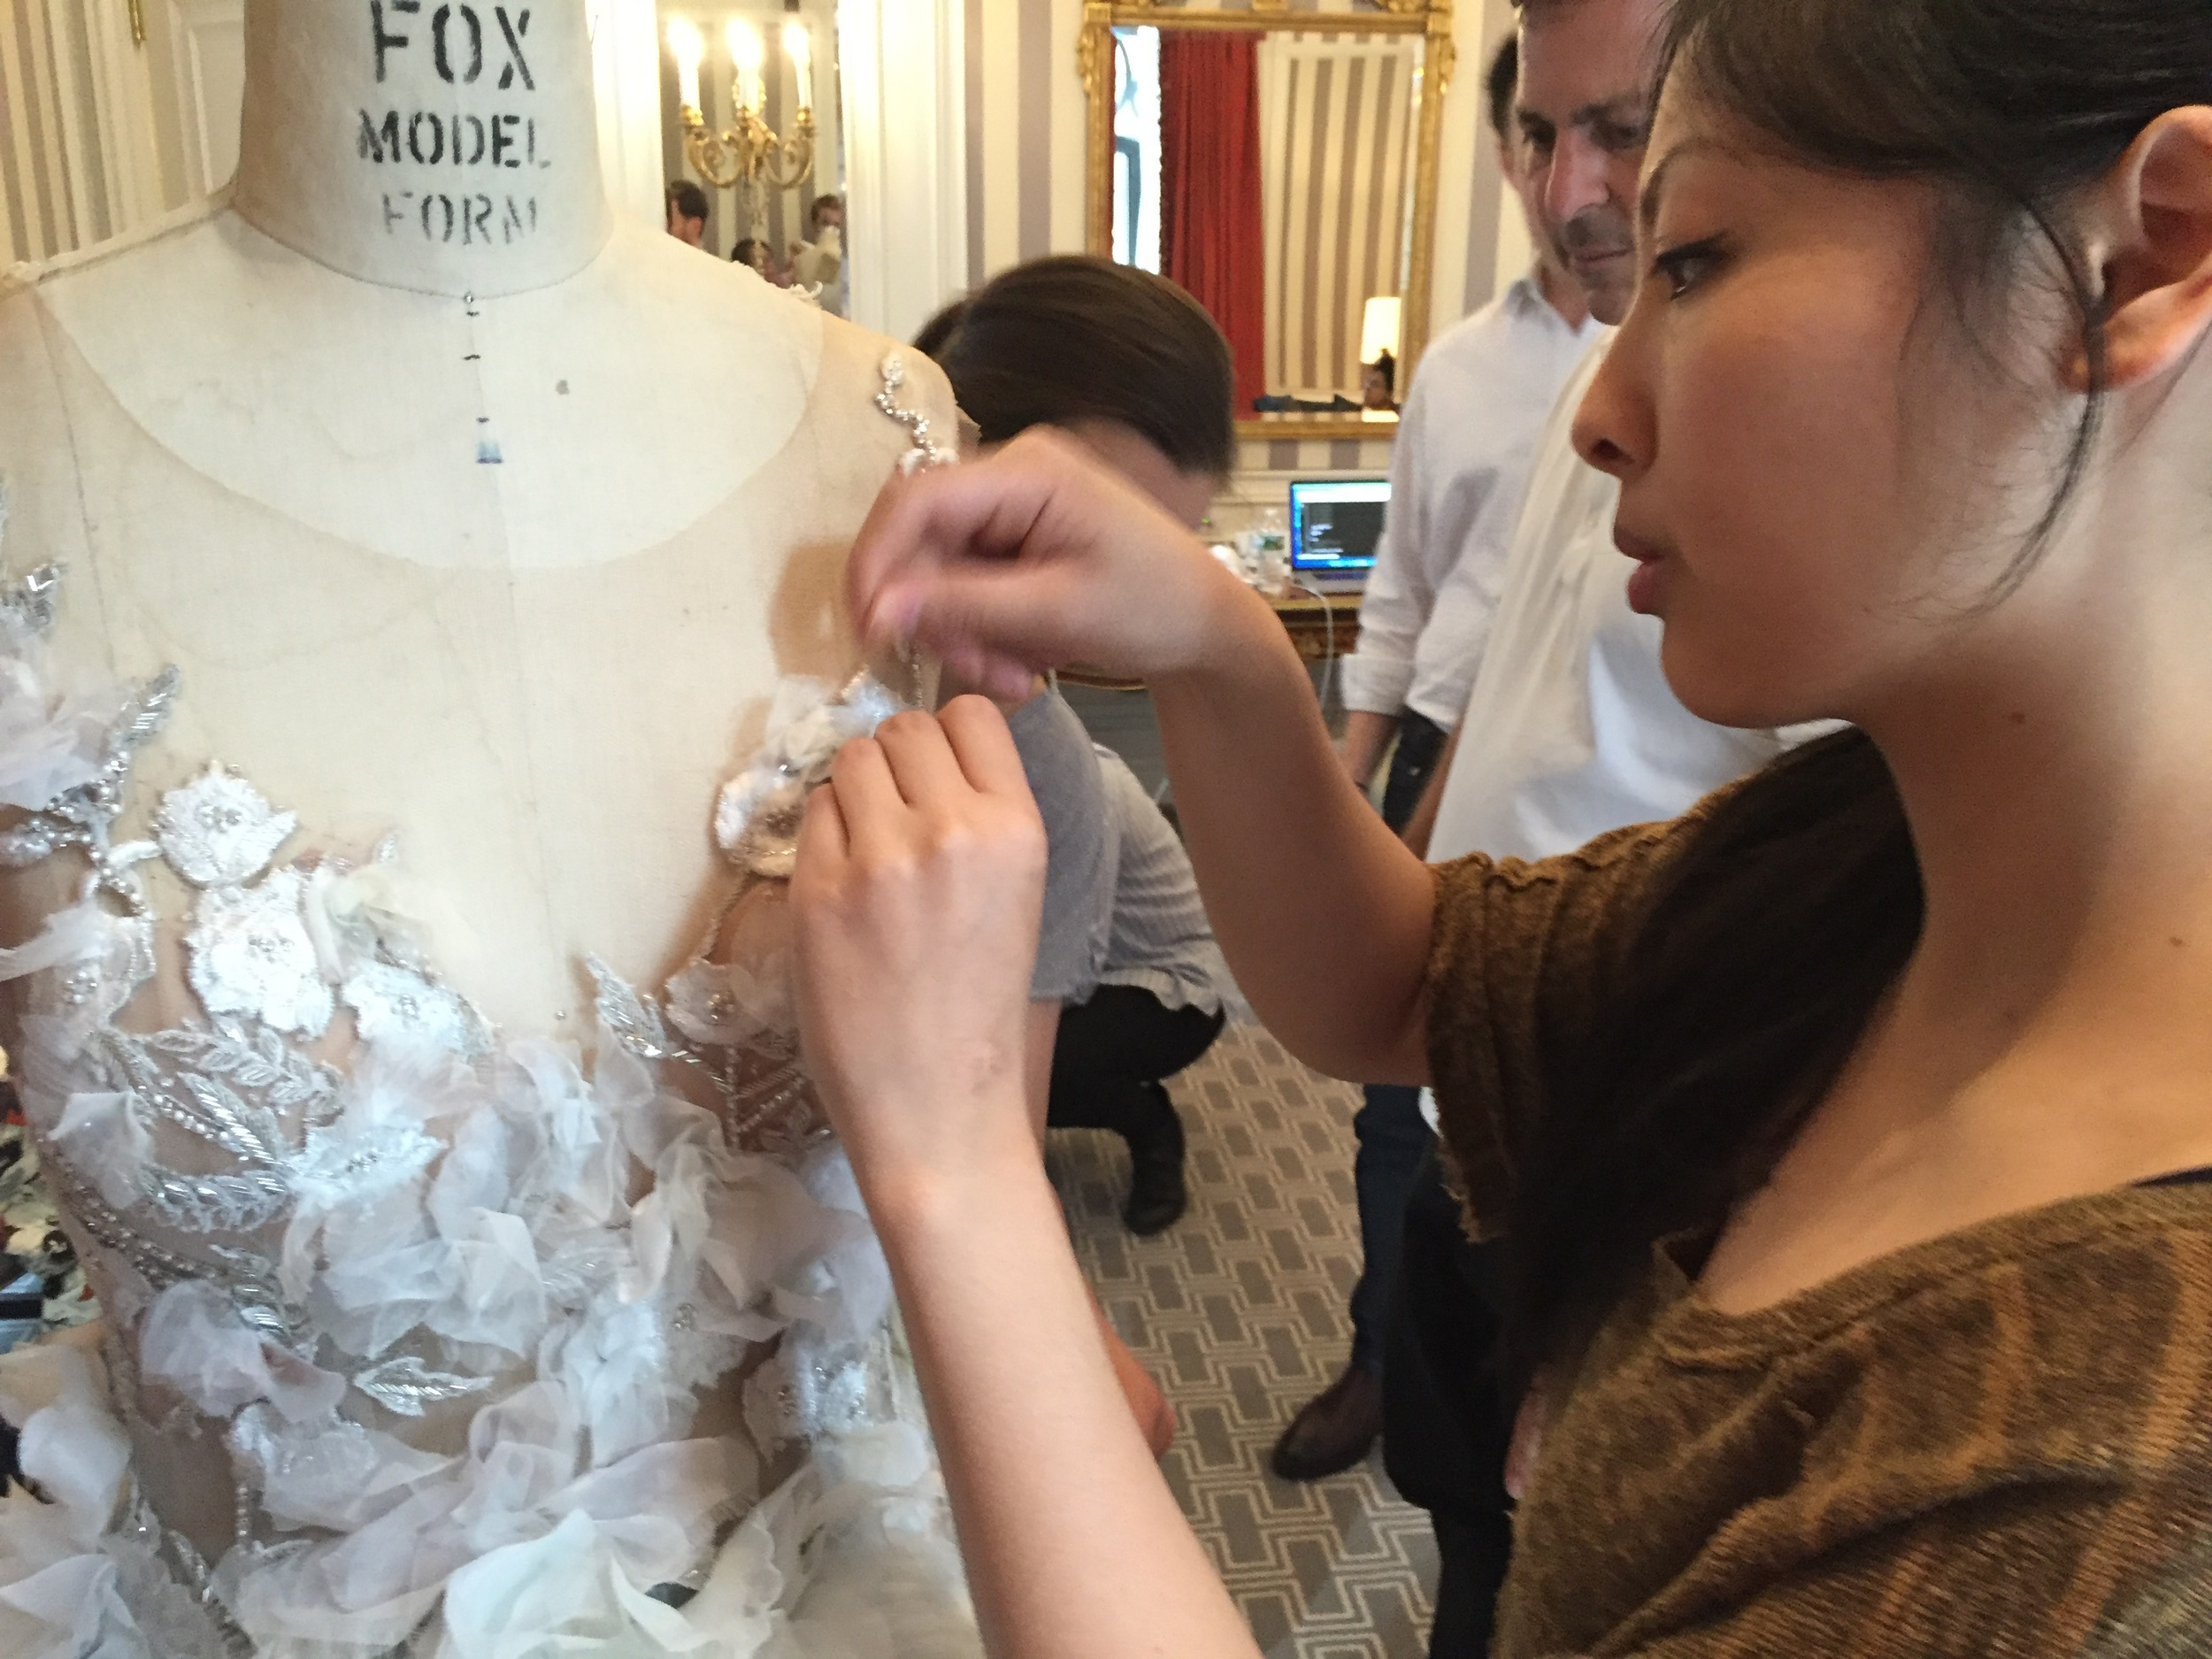 Final alterations being made at the St. Regis hotel hours before the gala